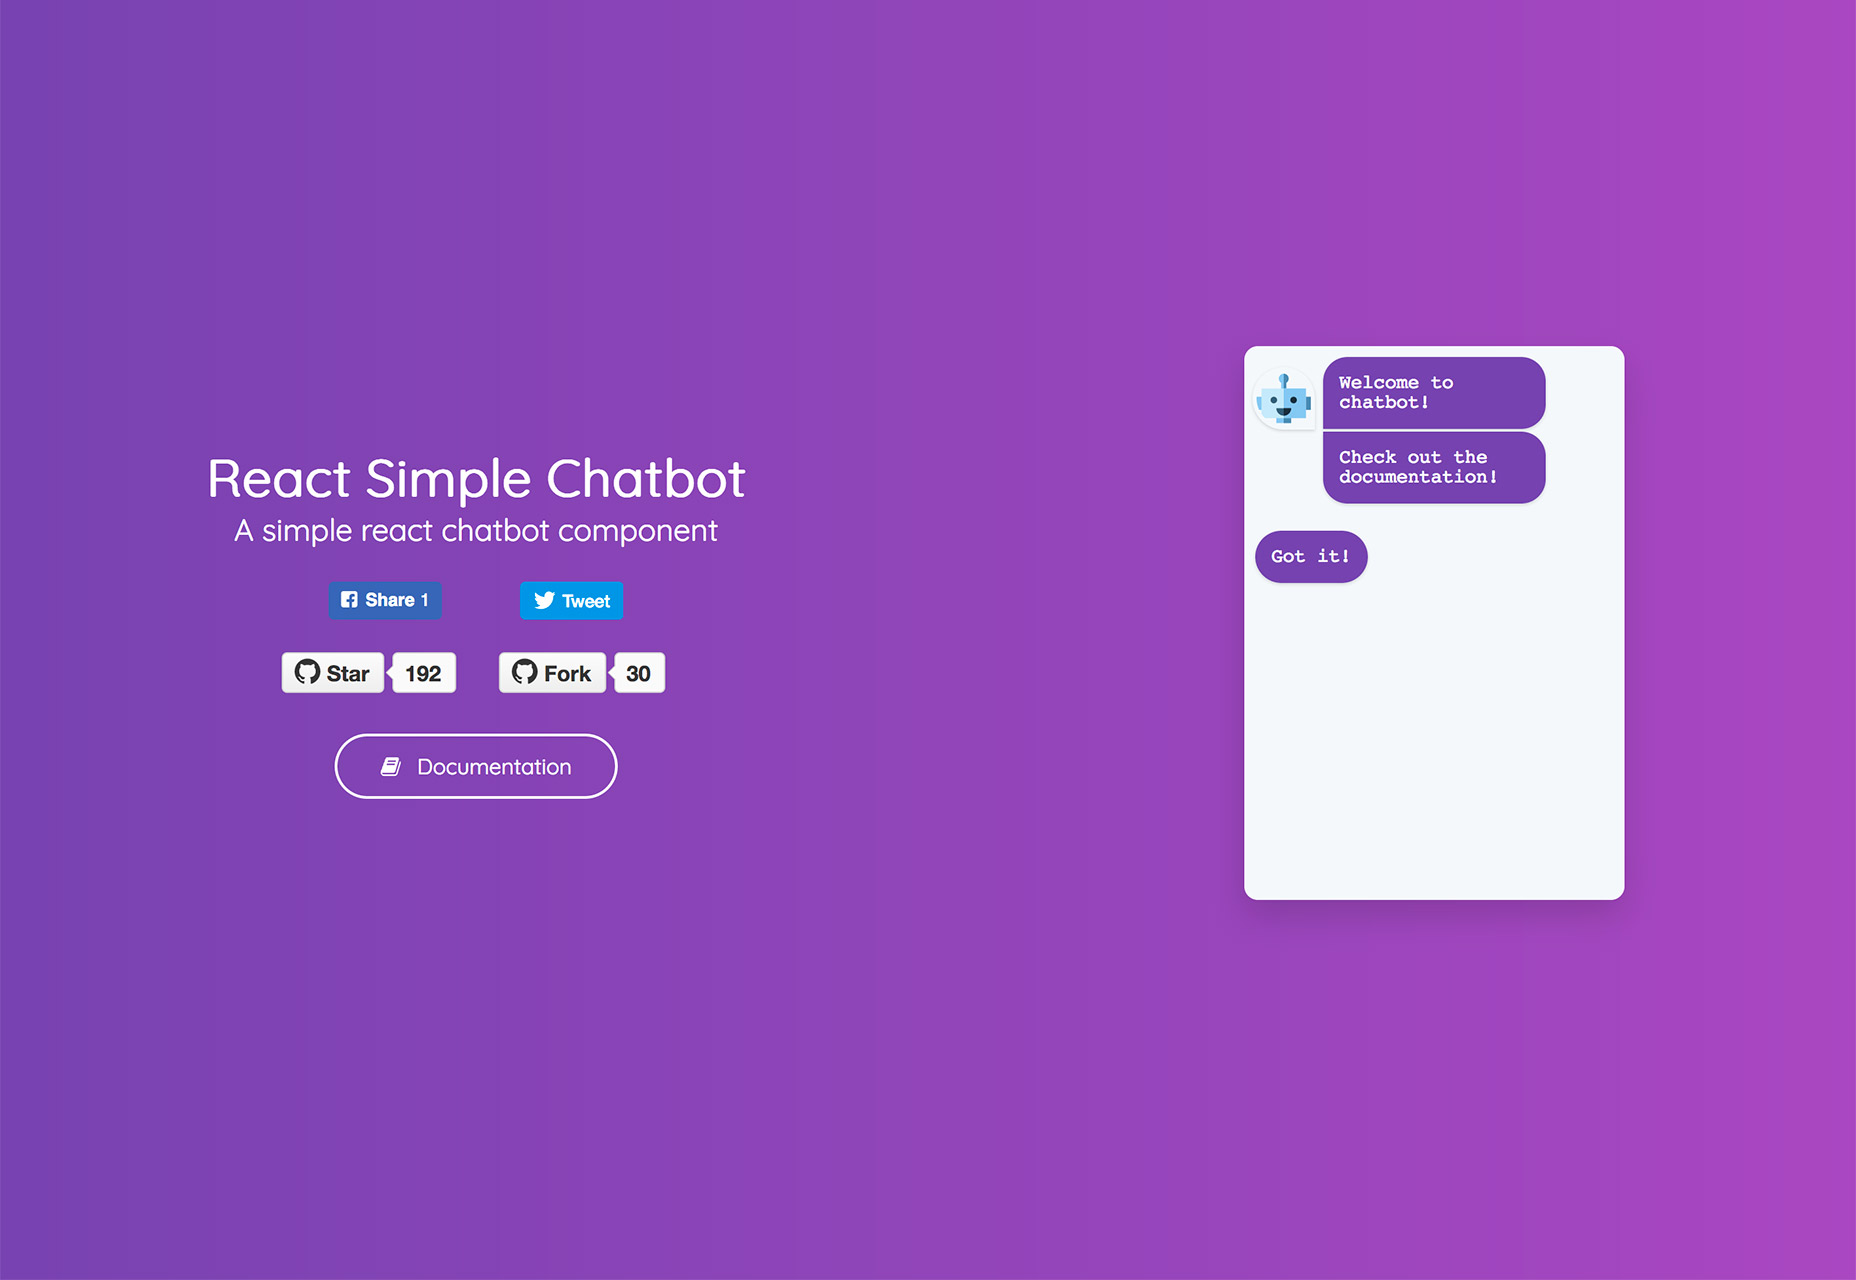 a simple chatbot The future of marketing is messaging – and we couldn't be more excited about building a visual chatbot builder into the core hubspot platform with hubspot's acquisition of motion ai, we're bringing chatbots to the masses and enabling businesses to better engage, convert, close and delight their customers across every channel at scale.